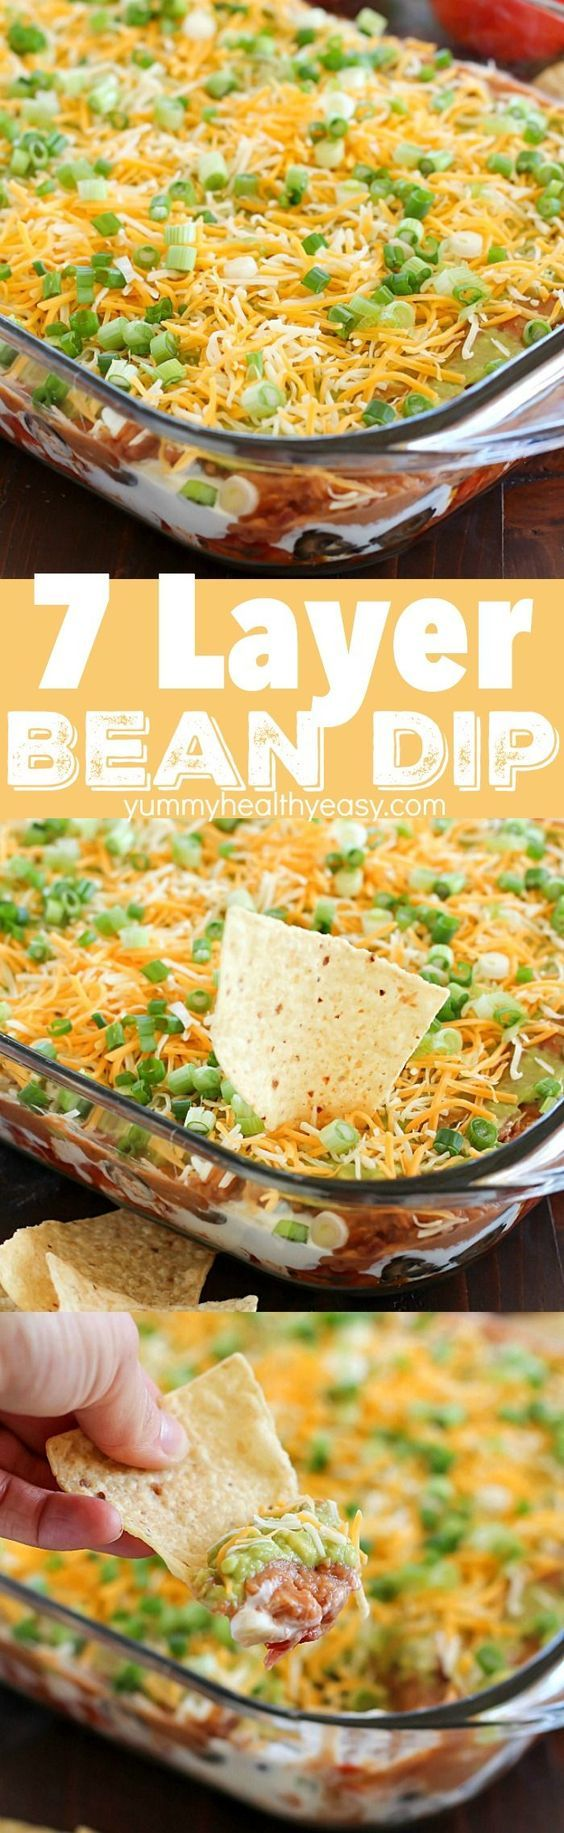 7 Layer Bean Dip - It's perfect to bring to a party or to serve during game day!: